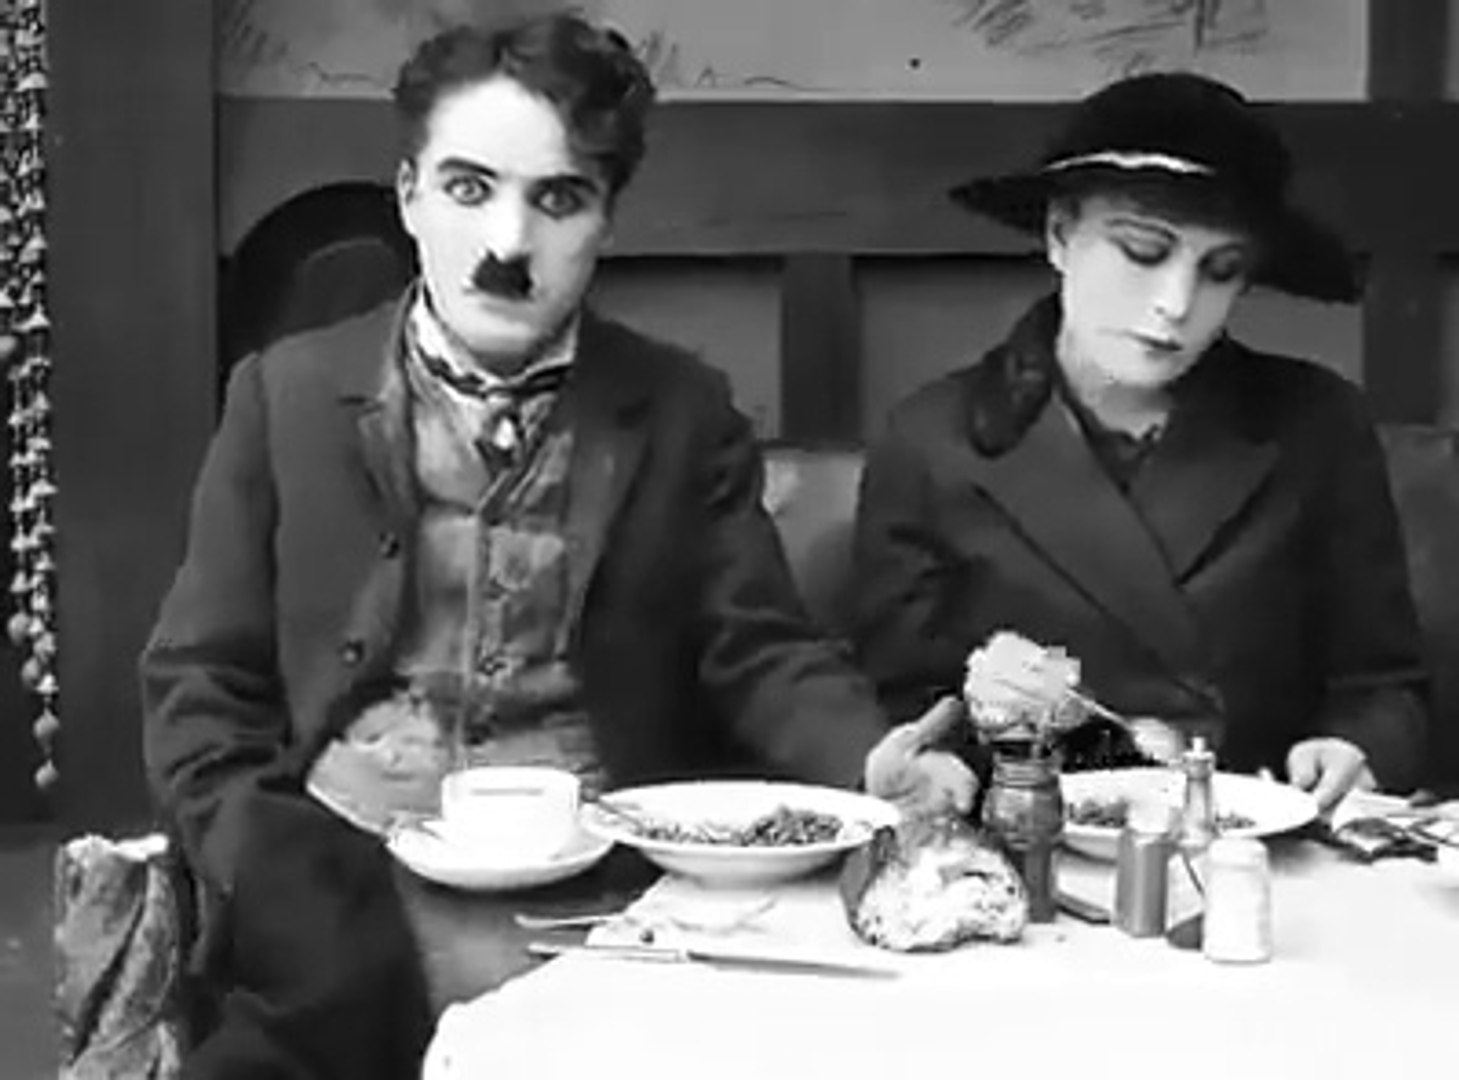 Charlie chaplin funny video..................funny videos and prank calls funny clips funny cats fun